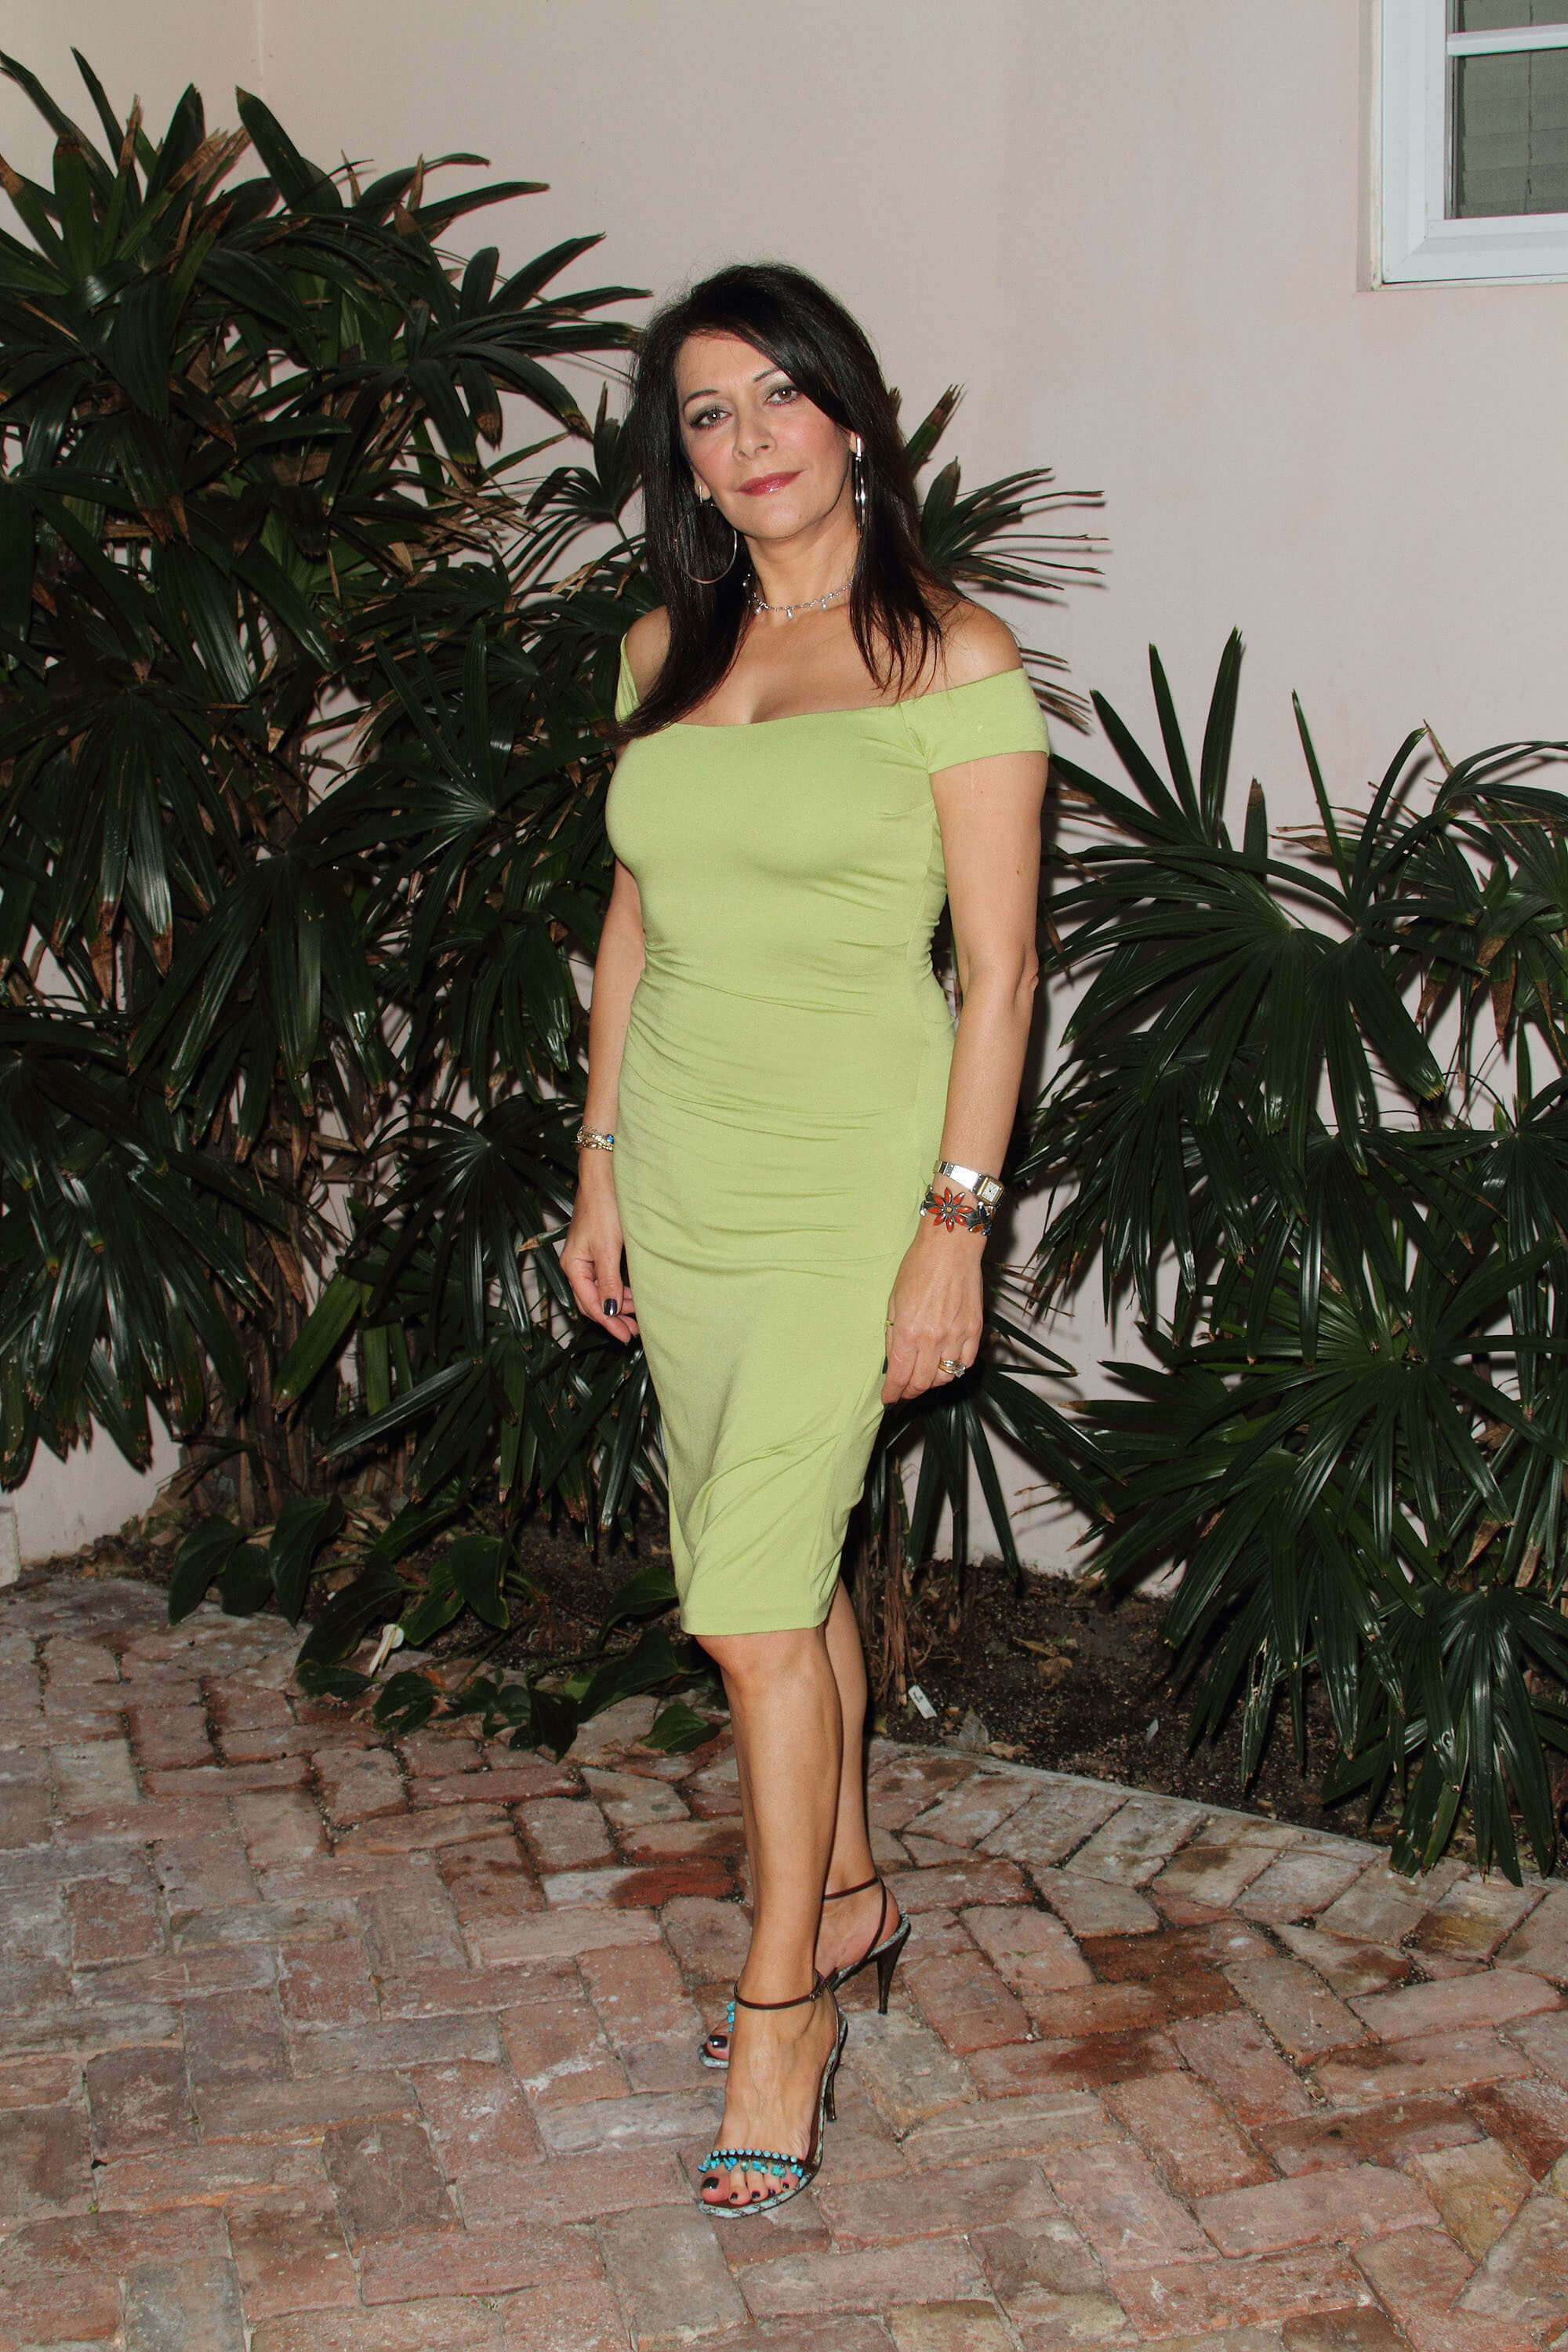 Marina Sirtis sexy green dress